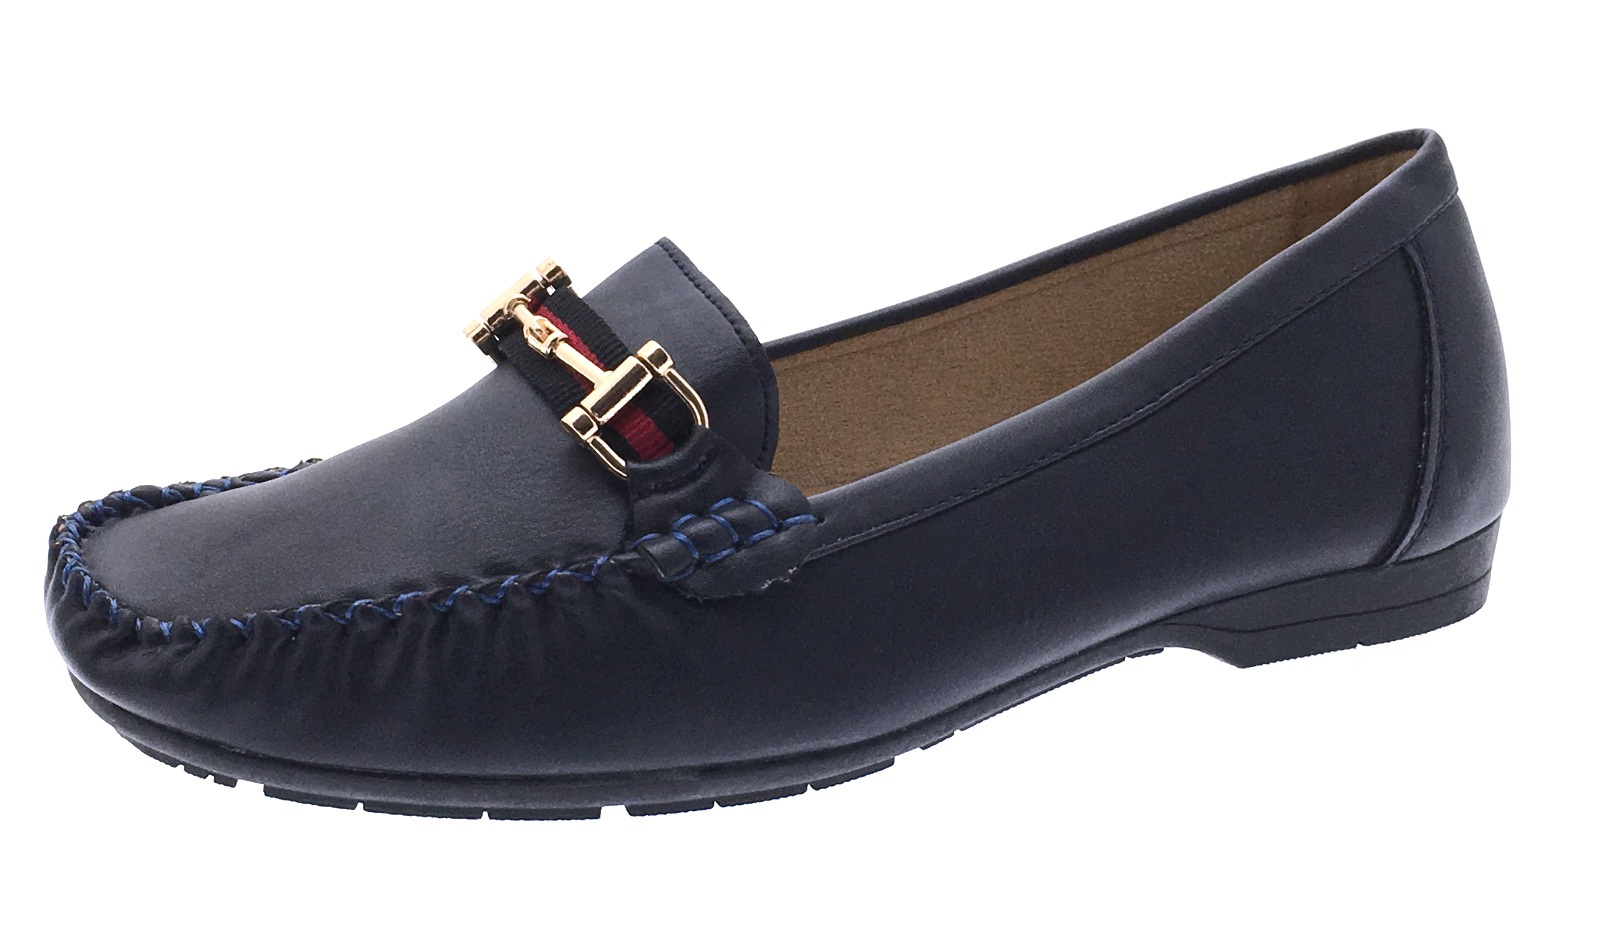 Free shipping on women's loafer flats, slip-on flats, and flat moccasins for women at custifara.ga Shop from top brands like Tory Burch, TOMS, Sam Edelman and more. Totally free shipping & returns. Skip navigation. Give a little wow. The best gifts are here, every day of the year.